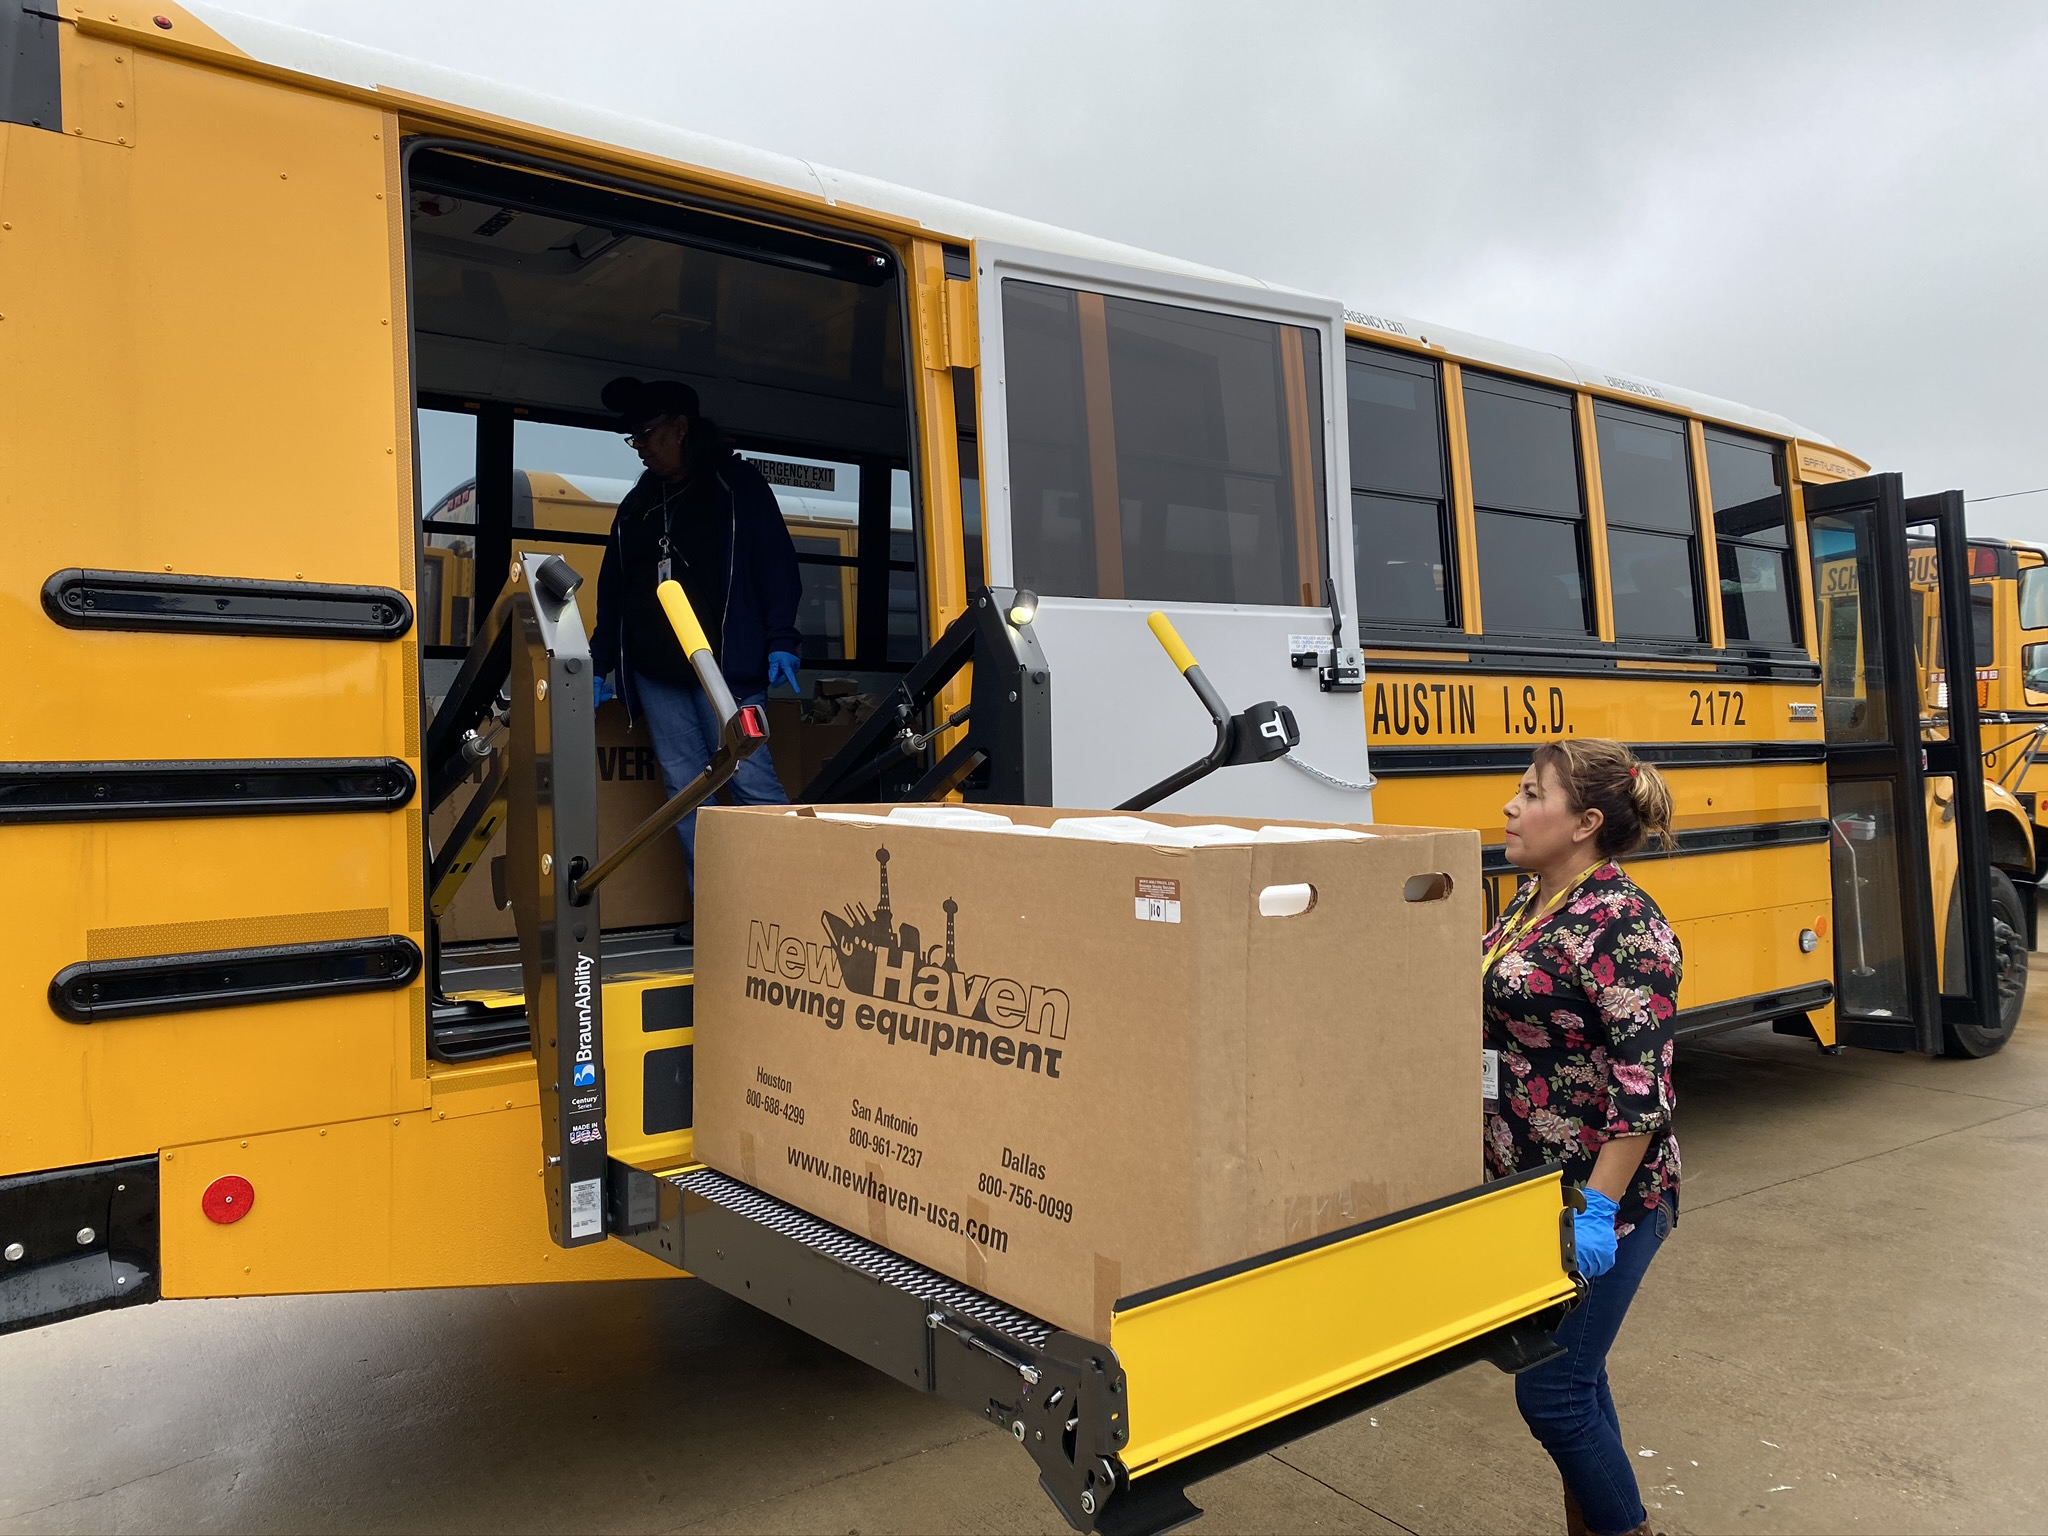 Austin Isd Food Service On Twitter Over The Past Few Weeks Our Teams Have Quickly Adapted To Curbside And Bus Stop Meal Service Big Thanks To Newhavenmoving For Providing Furniture Dollies To